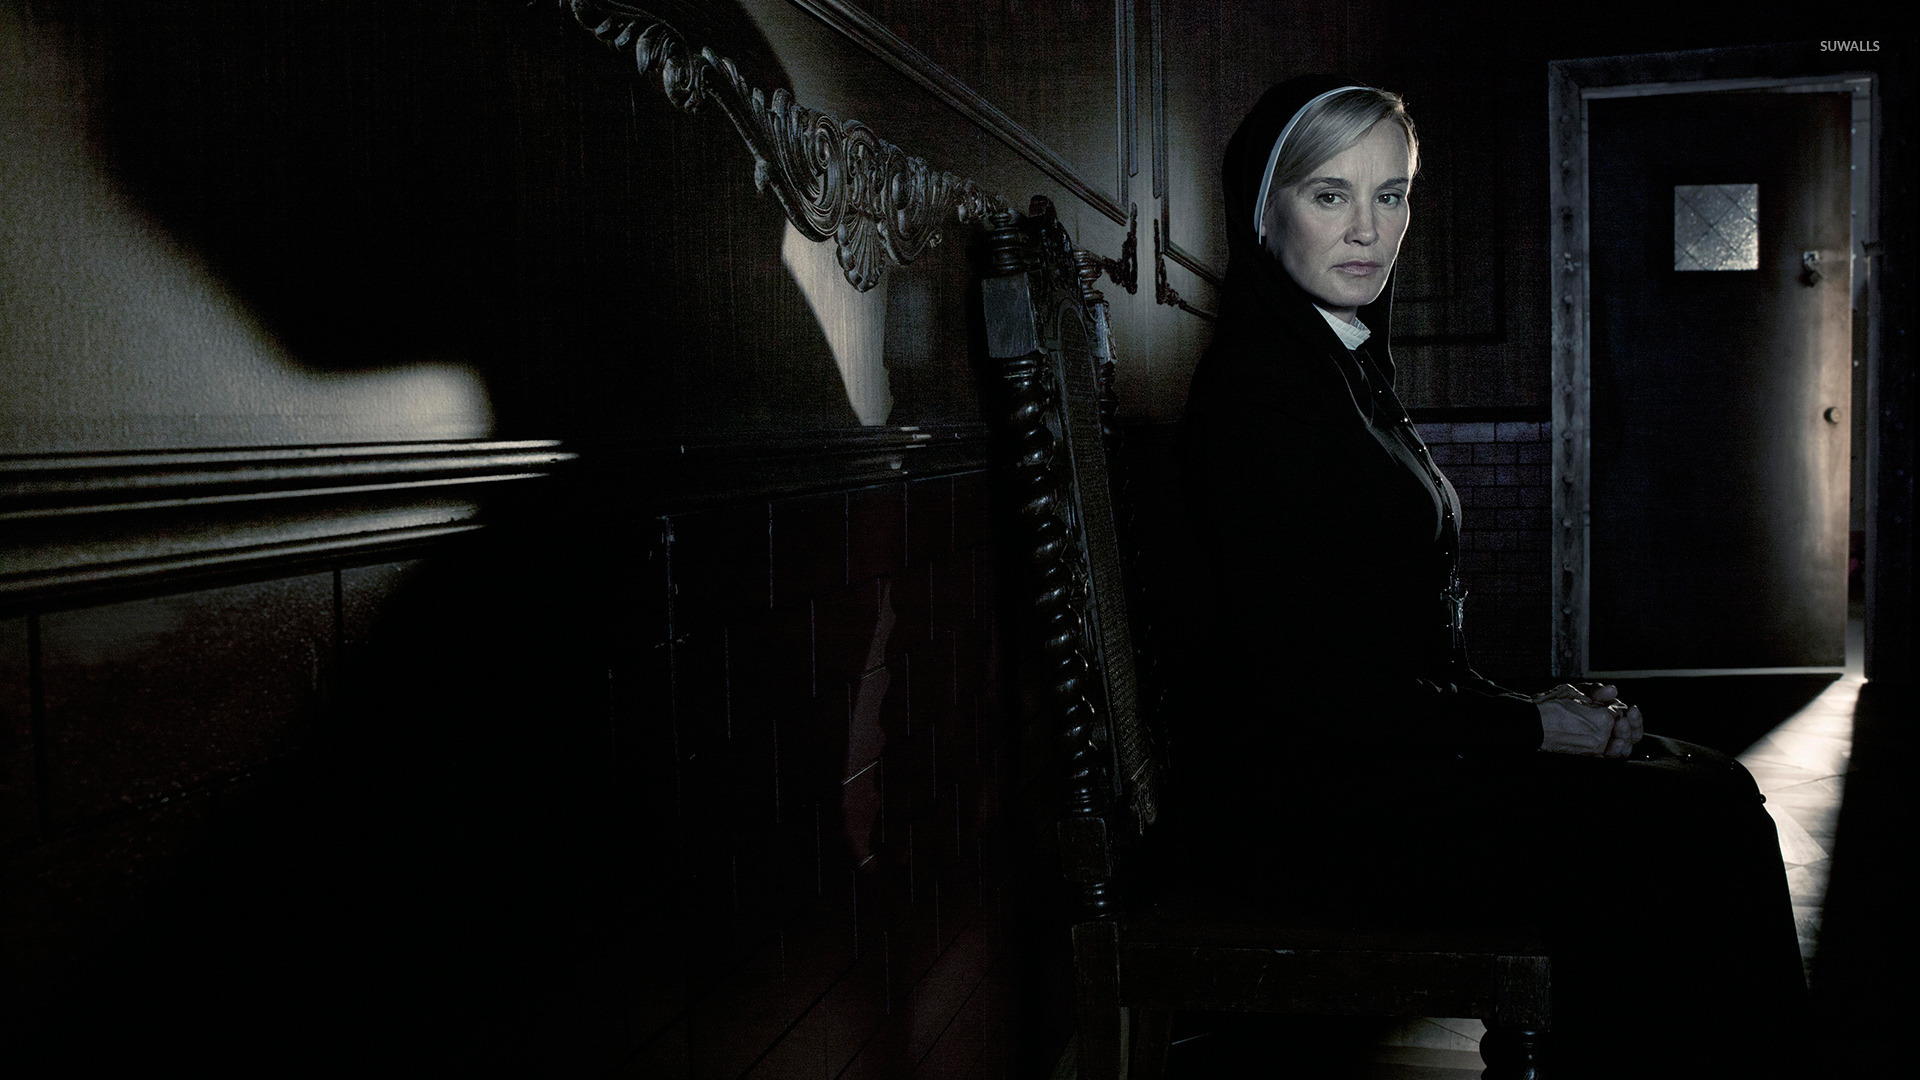 Constance Langdon American Horror Story Wallpaper Tv Show